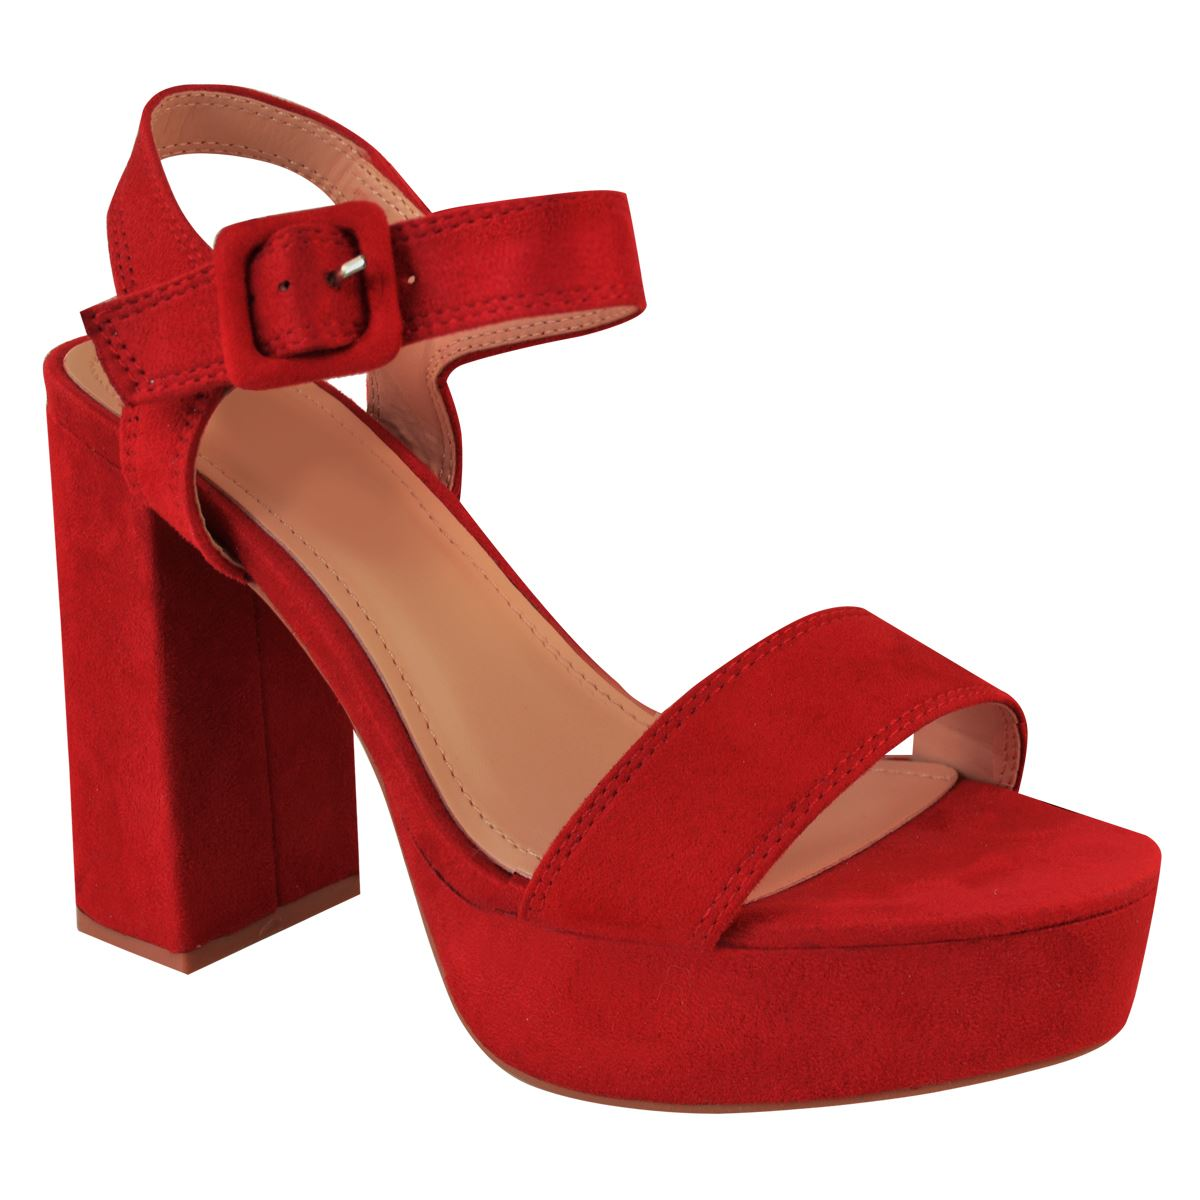 New-Womens-Summer-Platform-High-Heel-Sandals-Ladies-Open-Toe-Strappy-Party-Shoes thumbnail 38